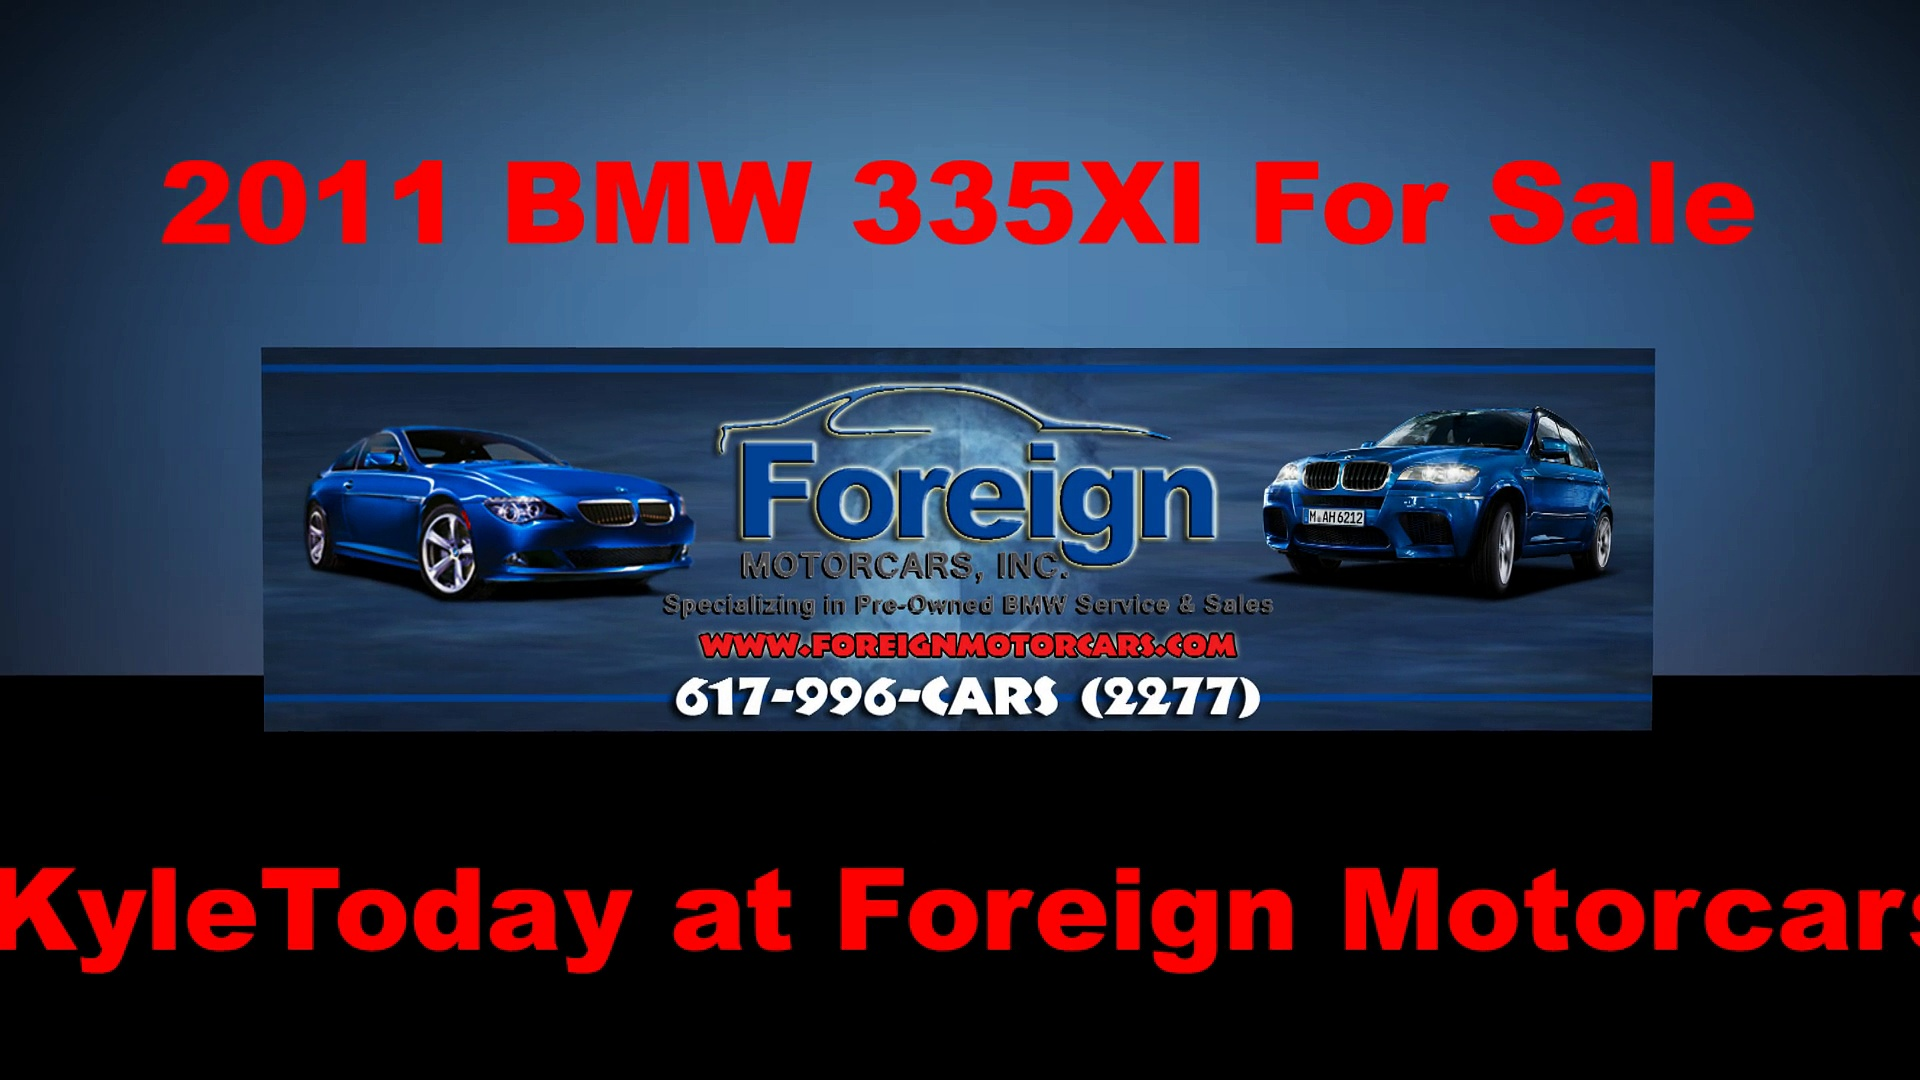 2011 BMW 335XI, For Sale, Foreign Motorcars Inc, Quincy MA, BMW Service, BMW Repair, BMW Sales